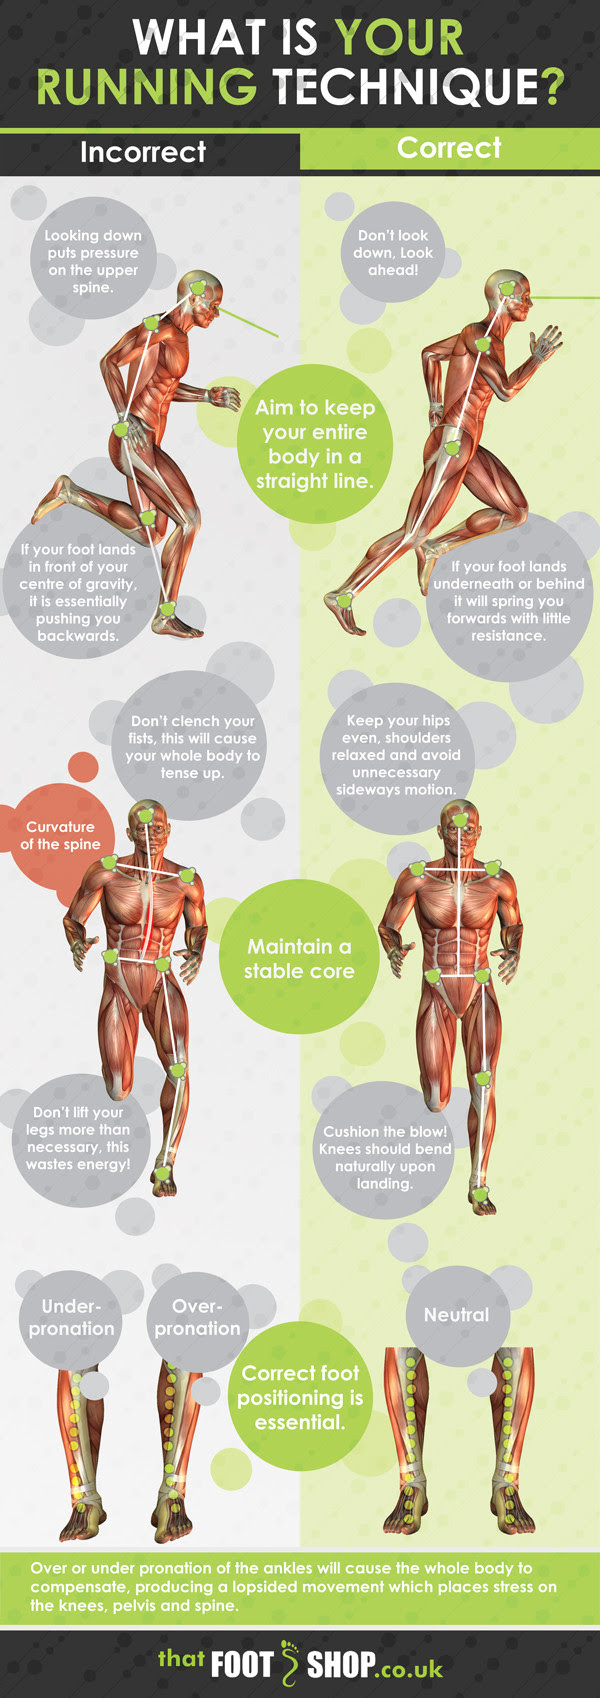 Infographic: What is Your Running Technique? #infographic